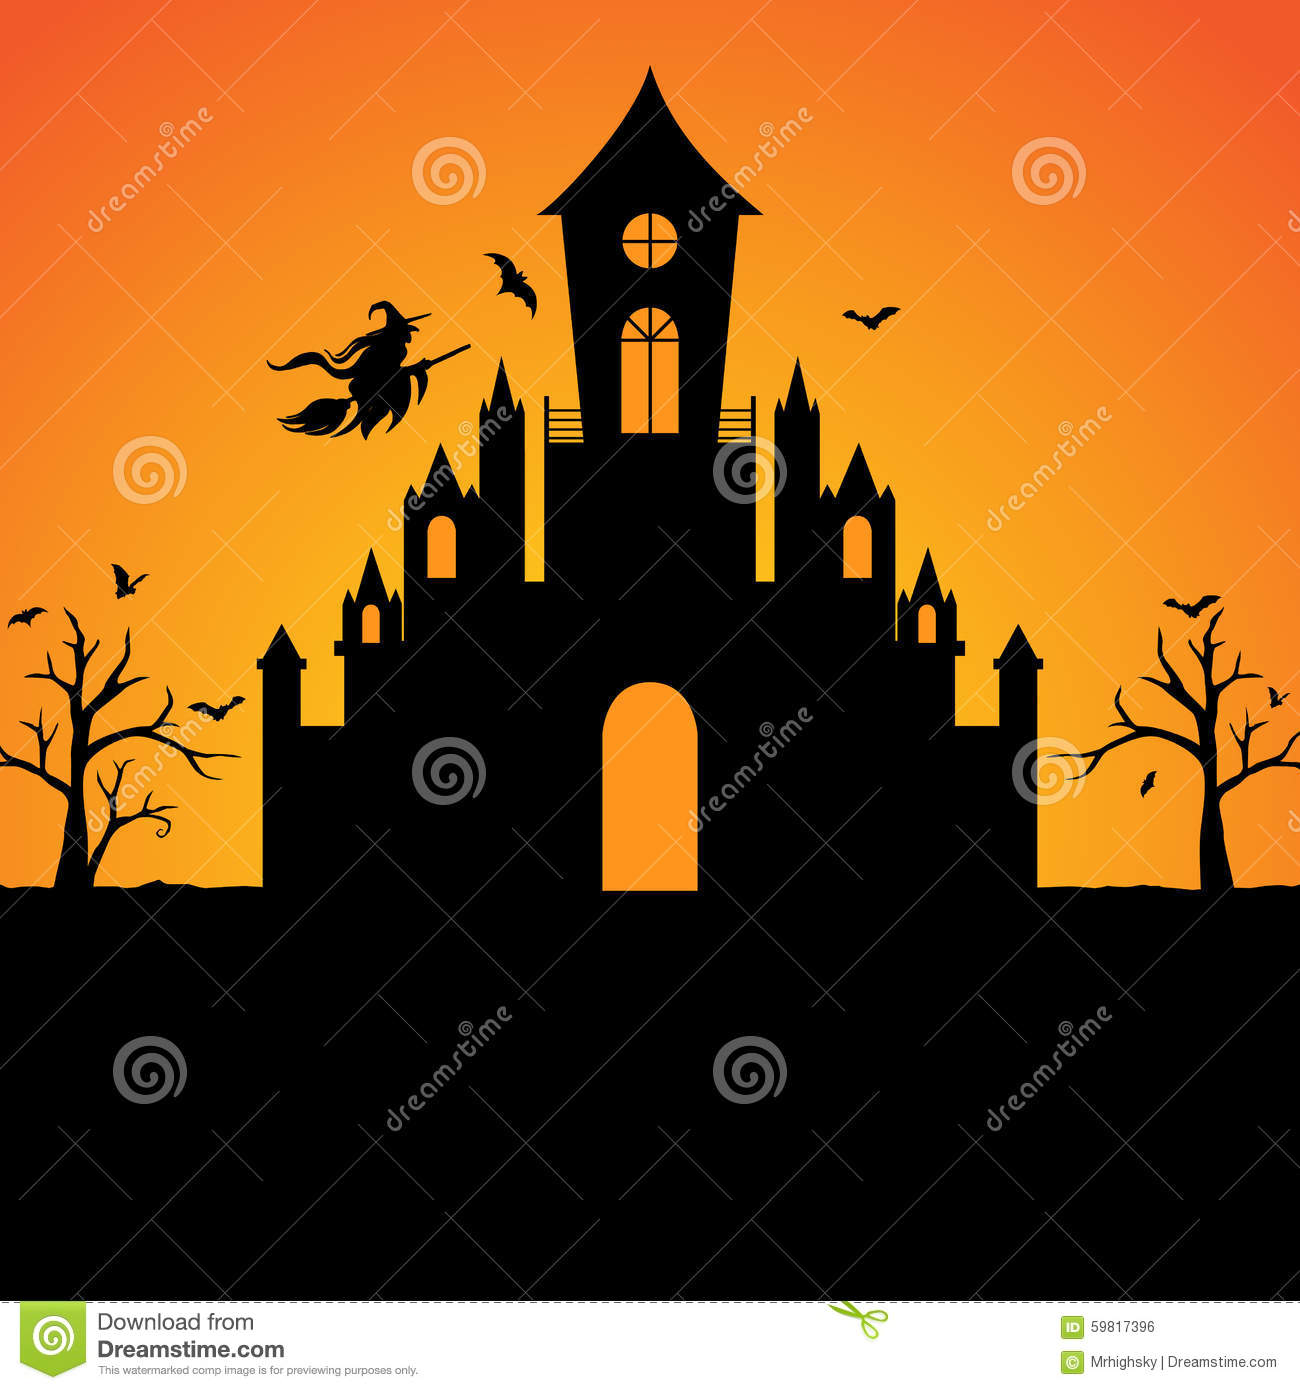 halloween witch castle silhouette background stock vector image 59817396. Black Bedroom Furniture Sets. Home Design Ideas